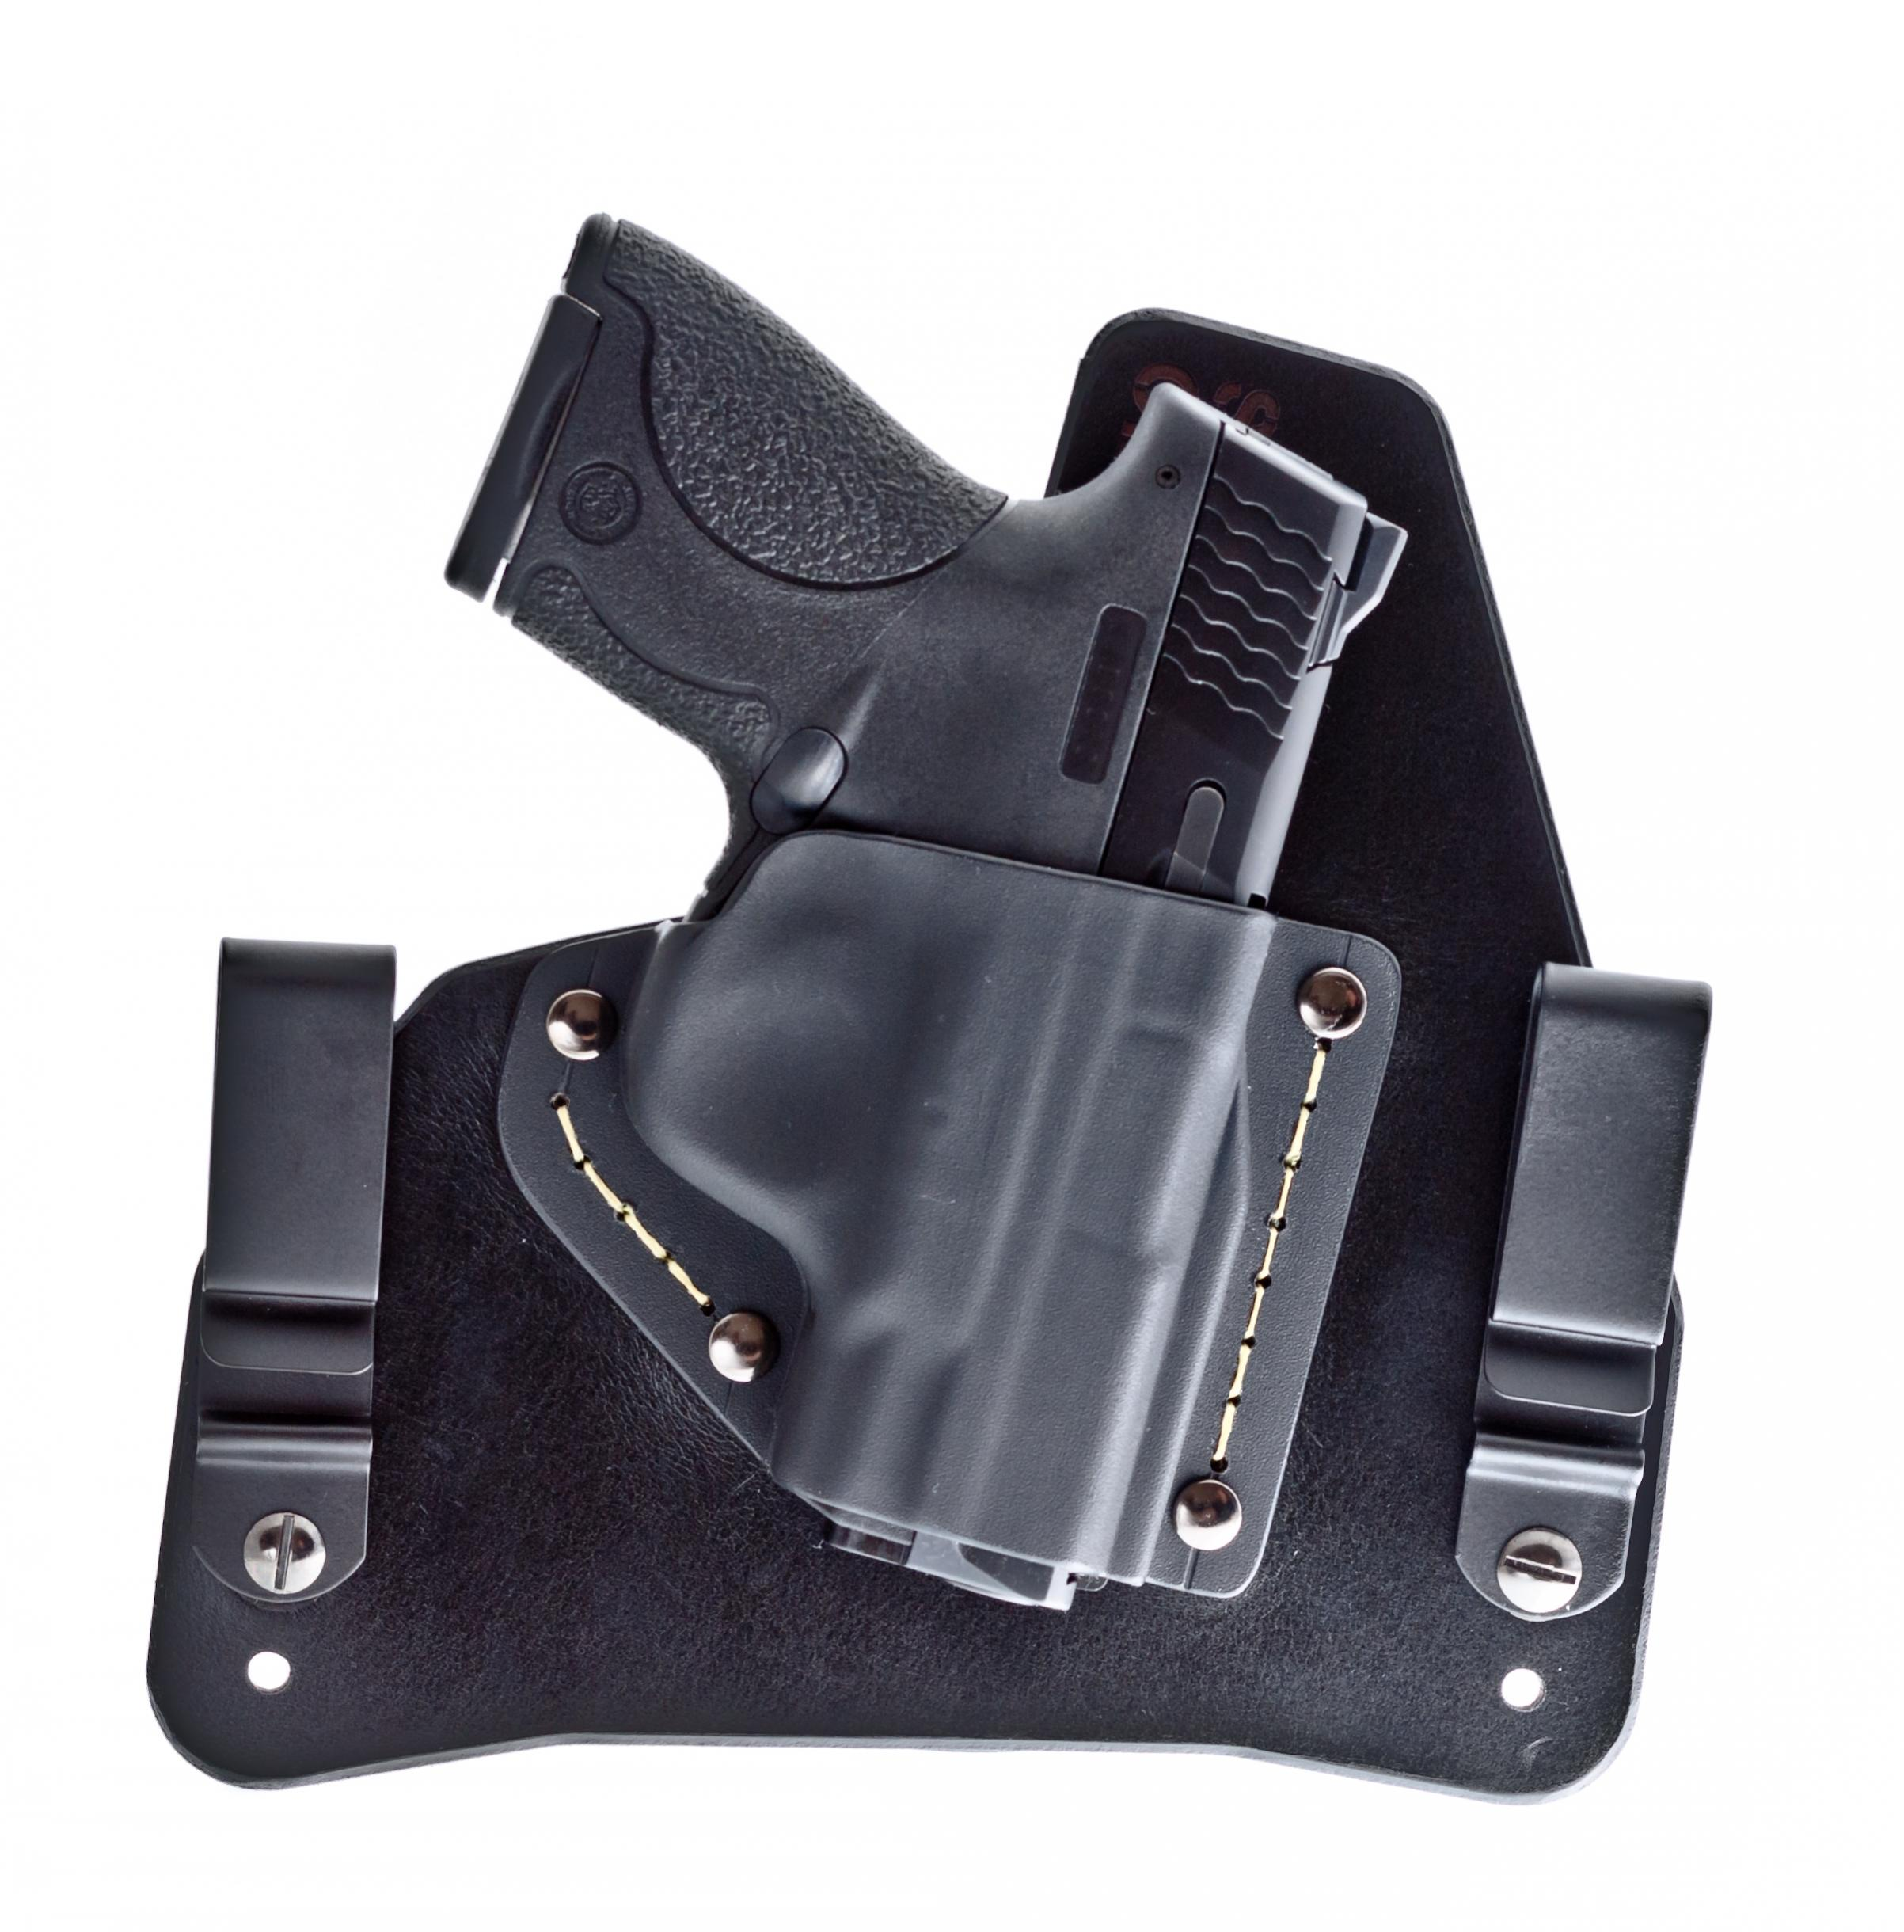 new to carry, tuckable vs sticky-m-p-shield-7.jpg